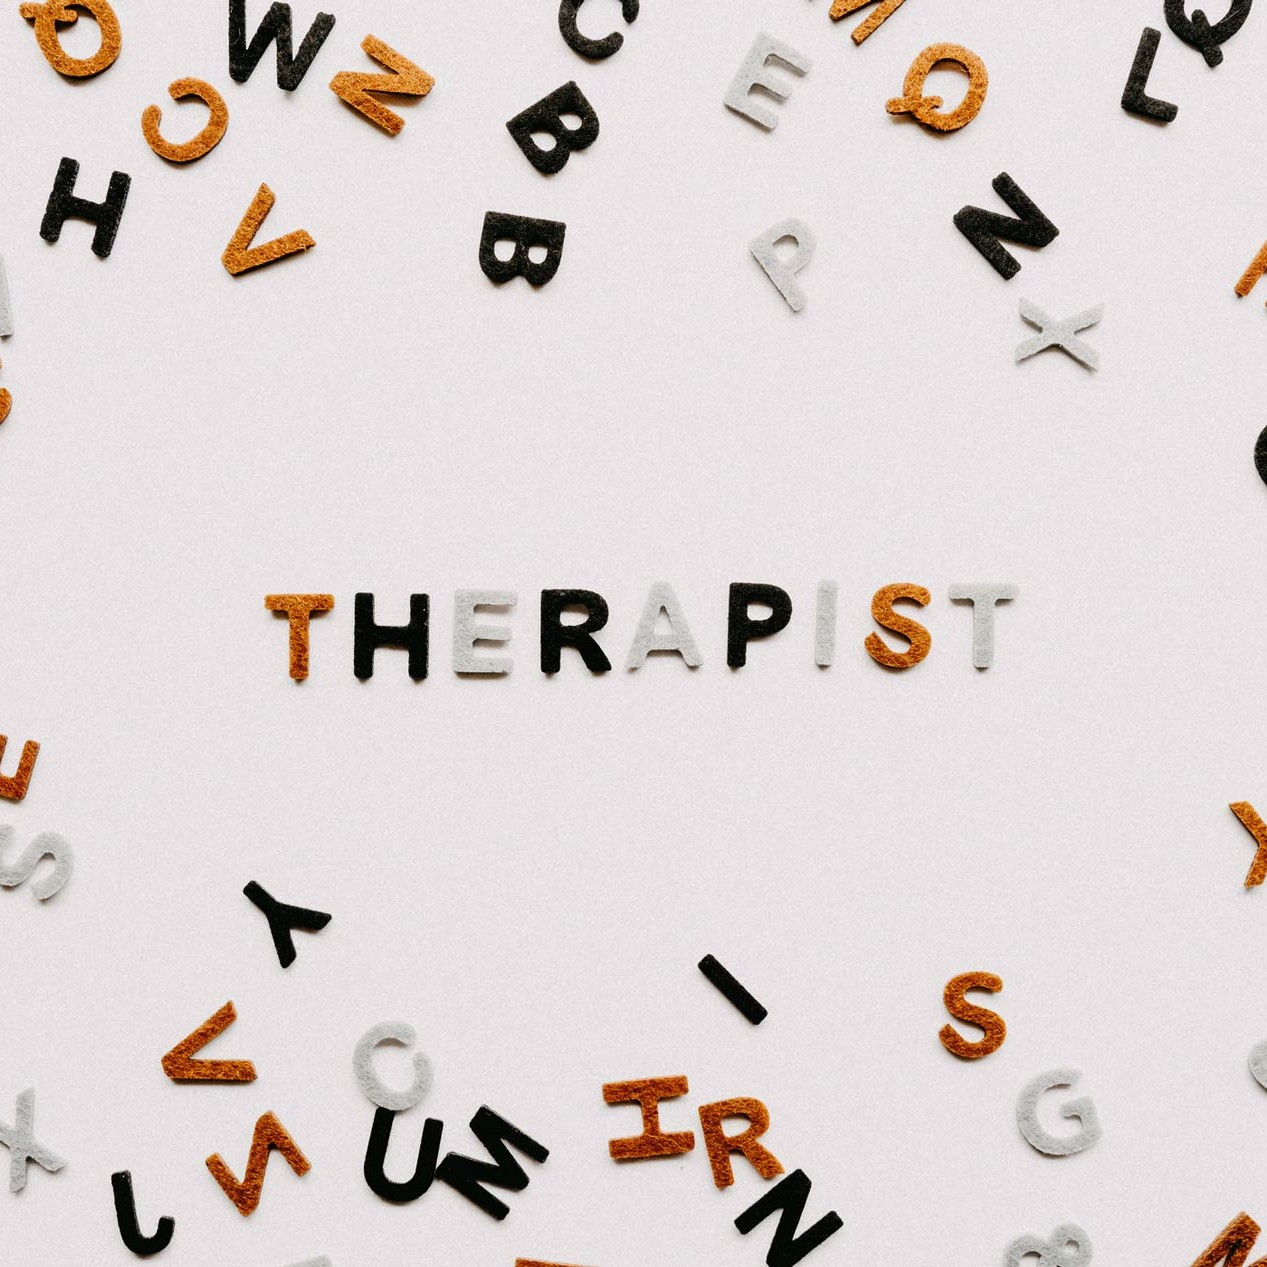 How do I choose a good therapist?